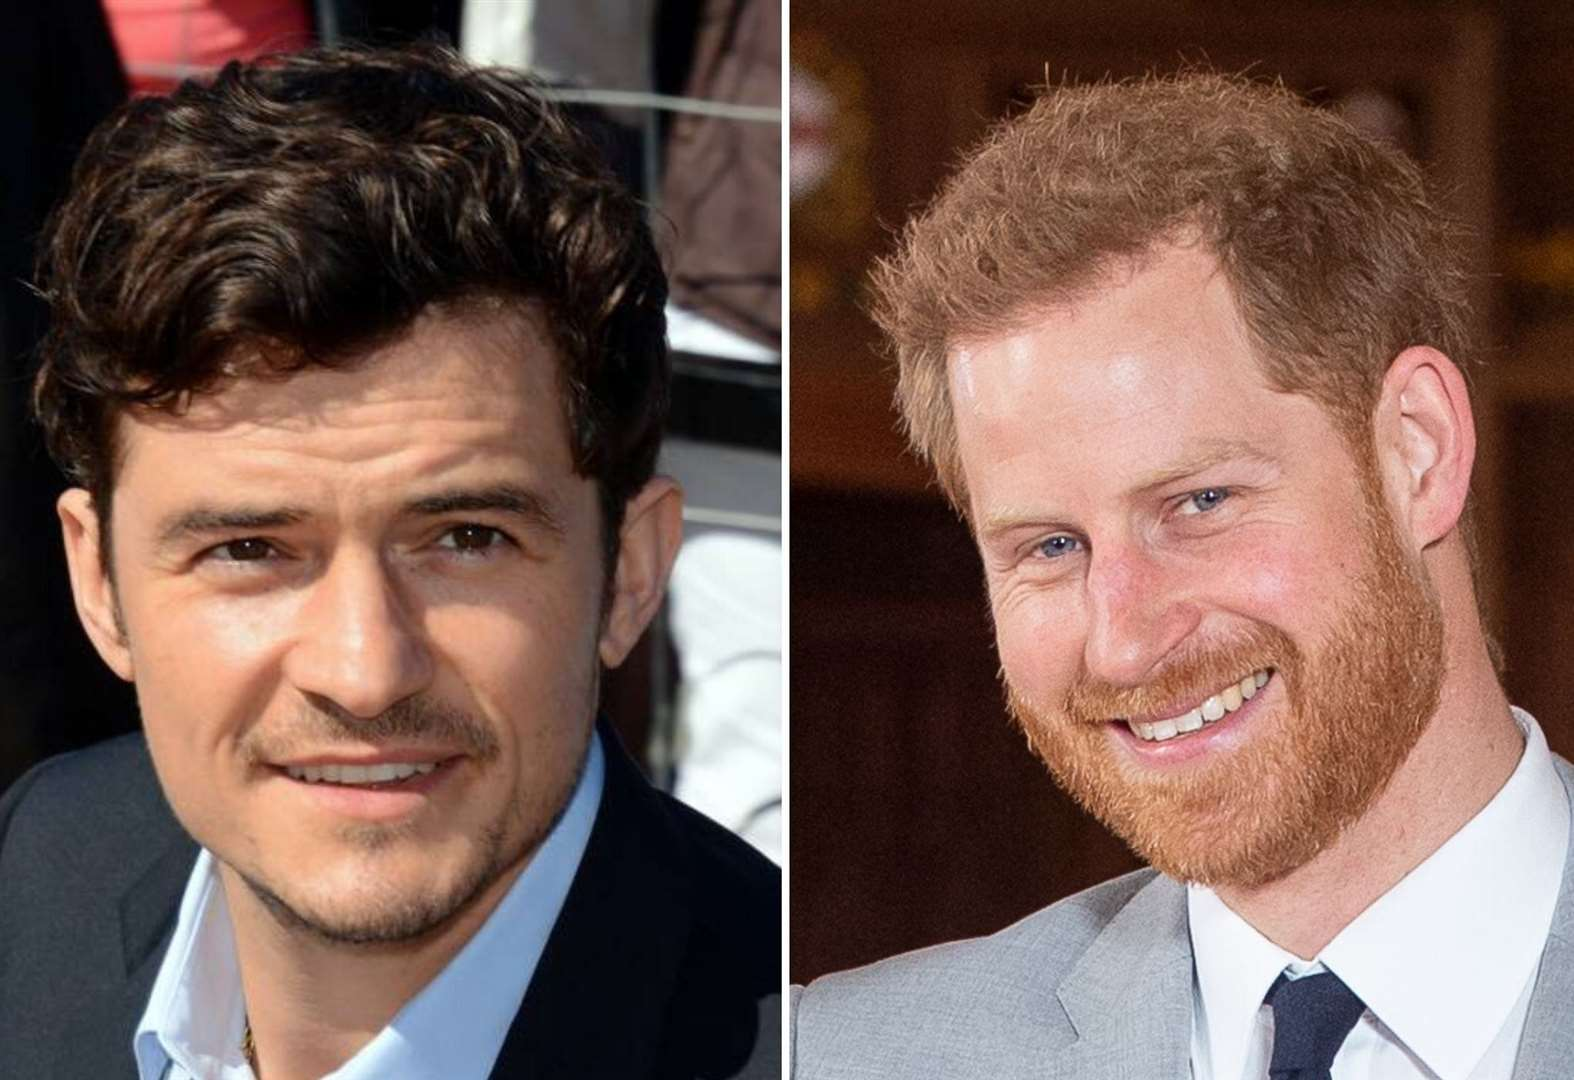 Orlando Bloom to voice Prince Harry in new series